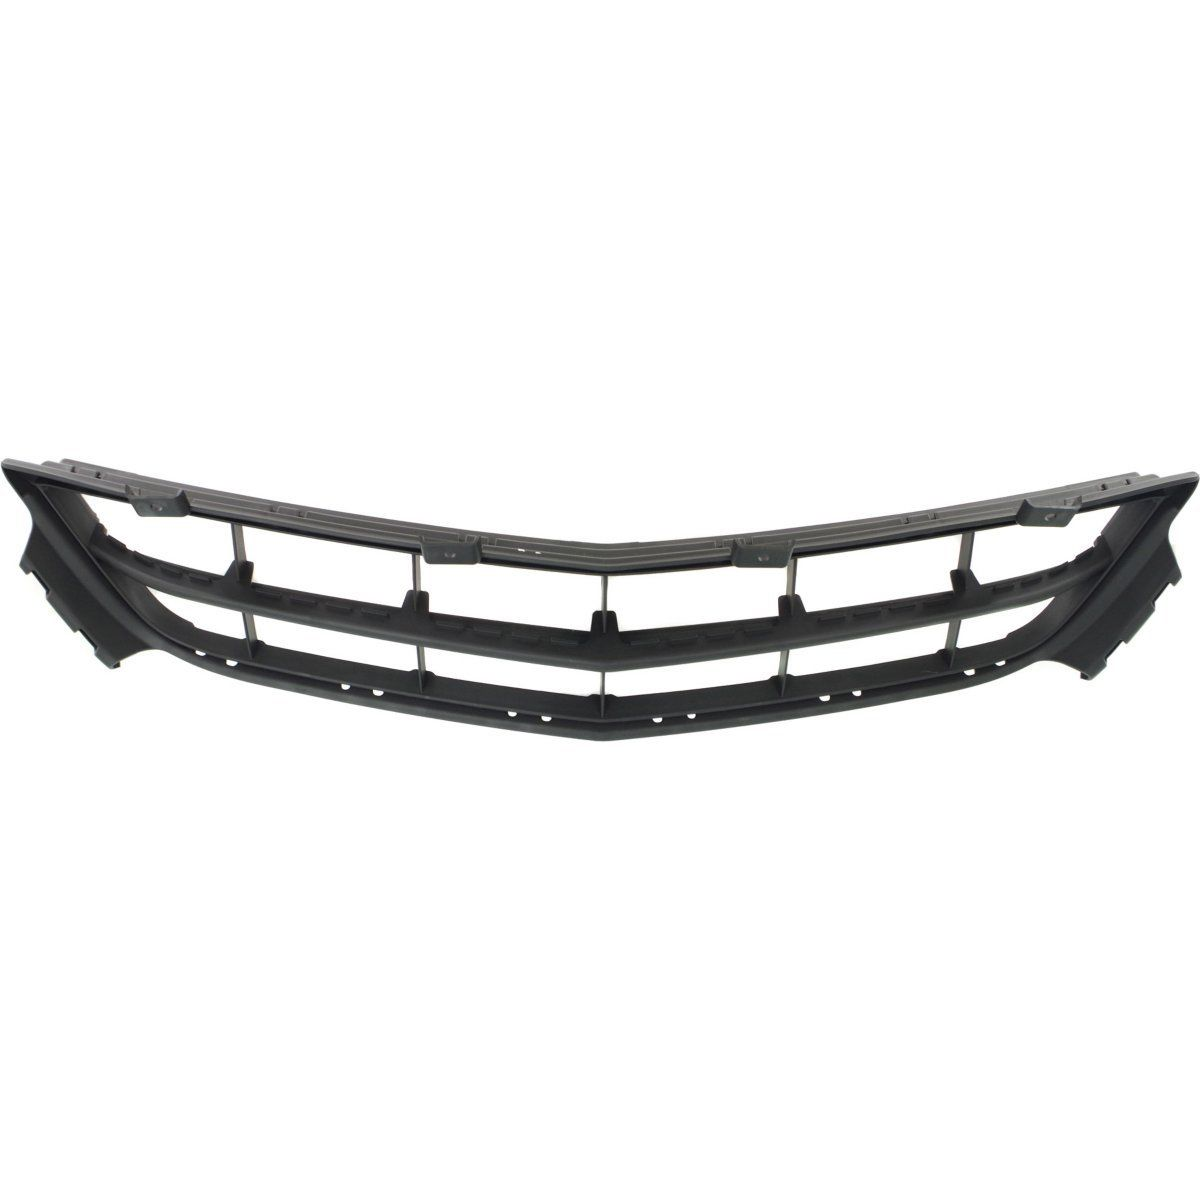 Bumper Grille For 2014-2015 Acura MDX AWD Center Textured